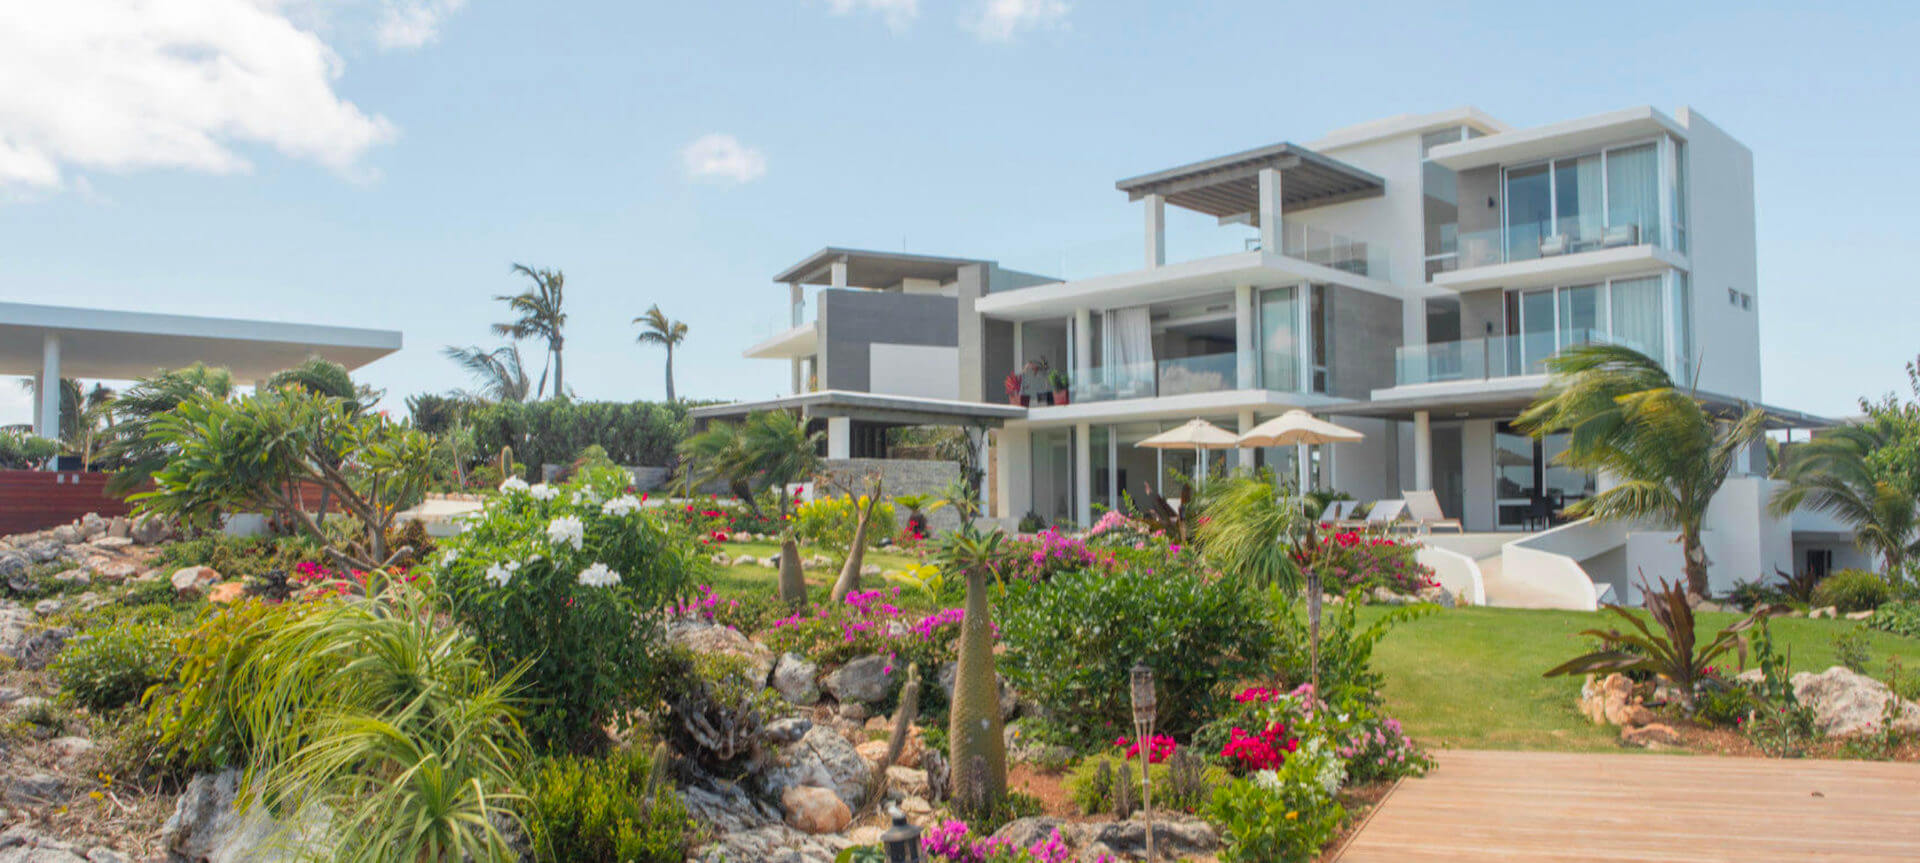 Àni Private Resorts, the world's first collection of private resorts